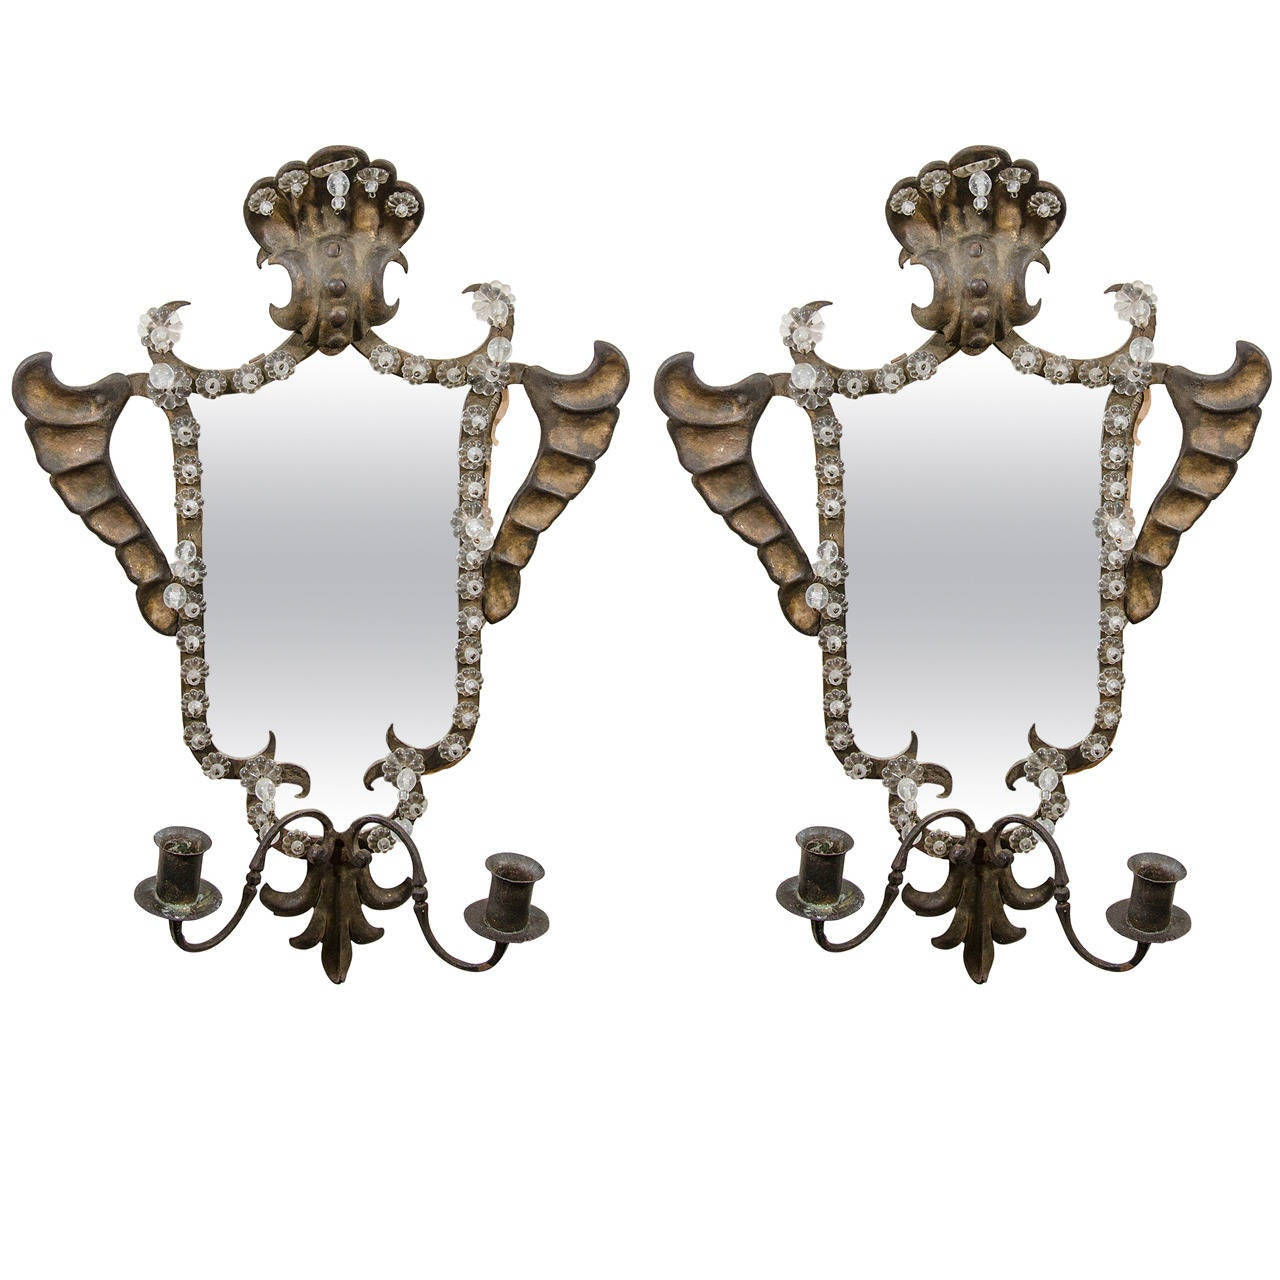 Antique pair of venetian mirrored wall sconces in hand wrought antique pair of venetian mirrored wall sconces in hand wrought iron 1 amipublicfo Image collections